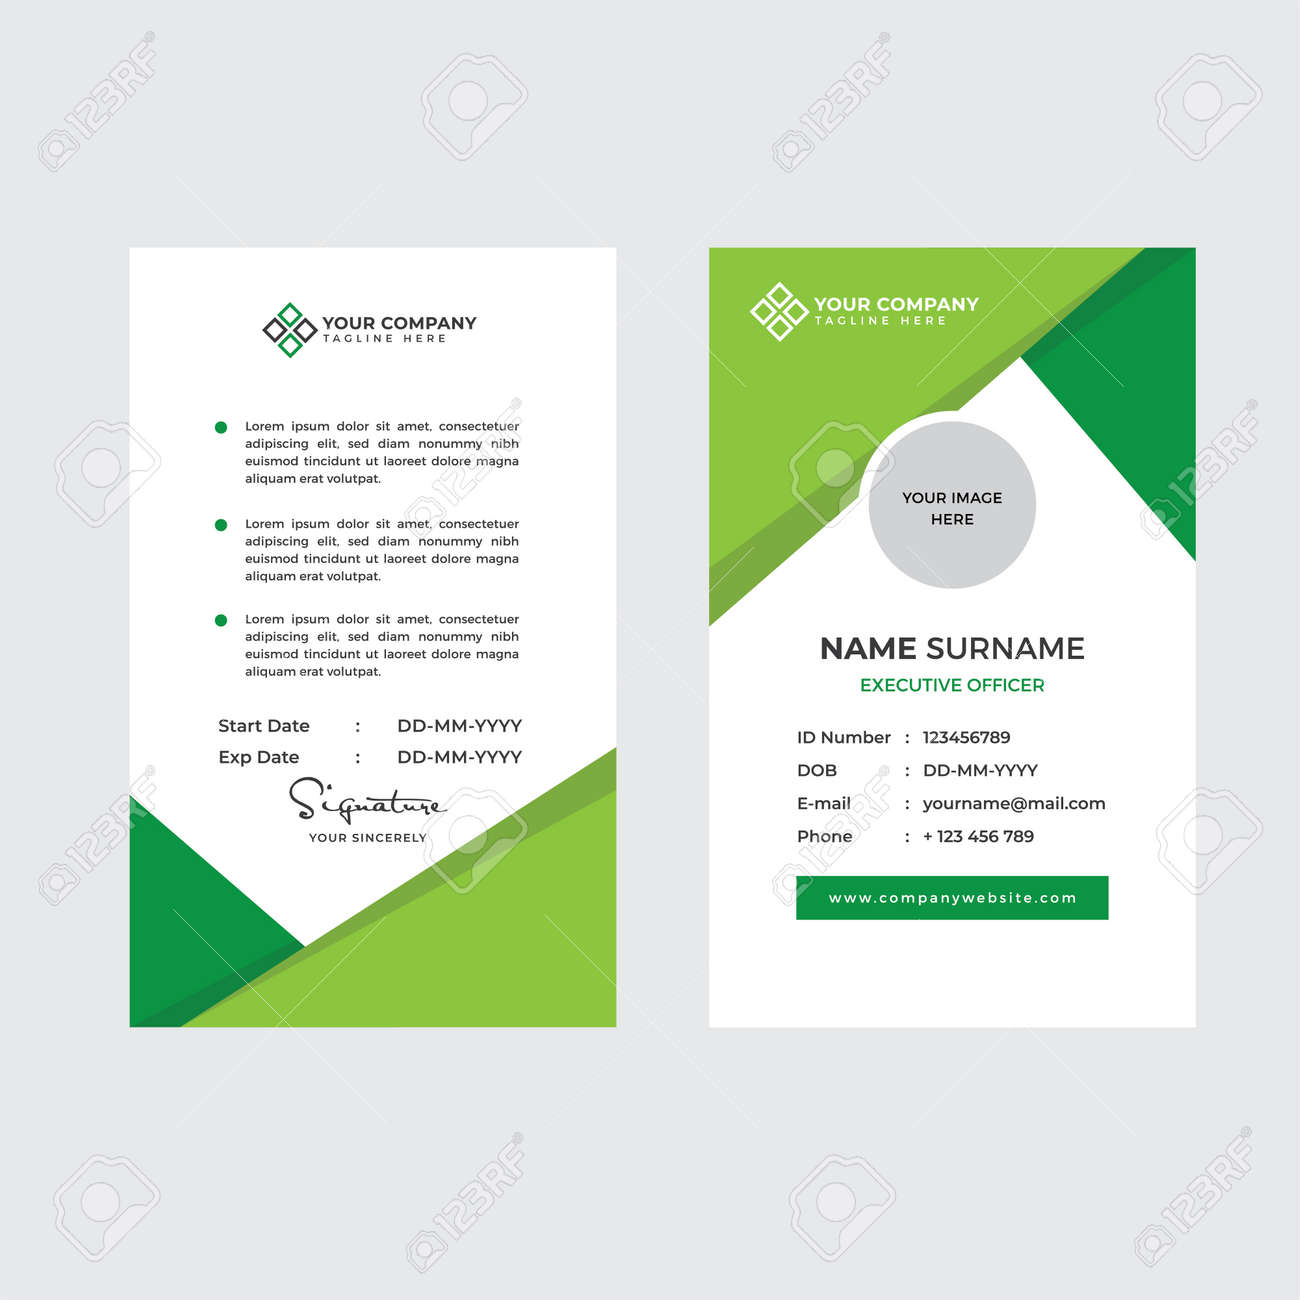 Premium Employee ID Card with Photo Placeholder, Name, Position and Company Profile Template Vector - 168723845